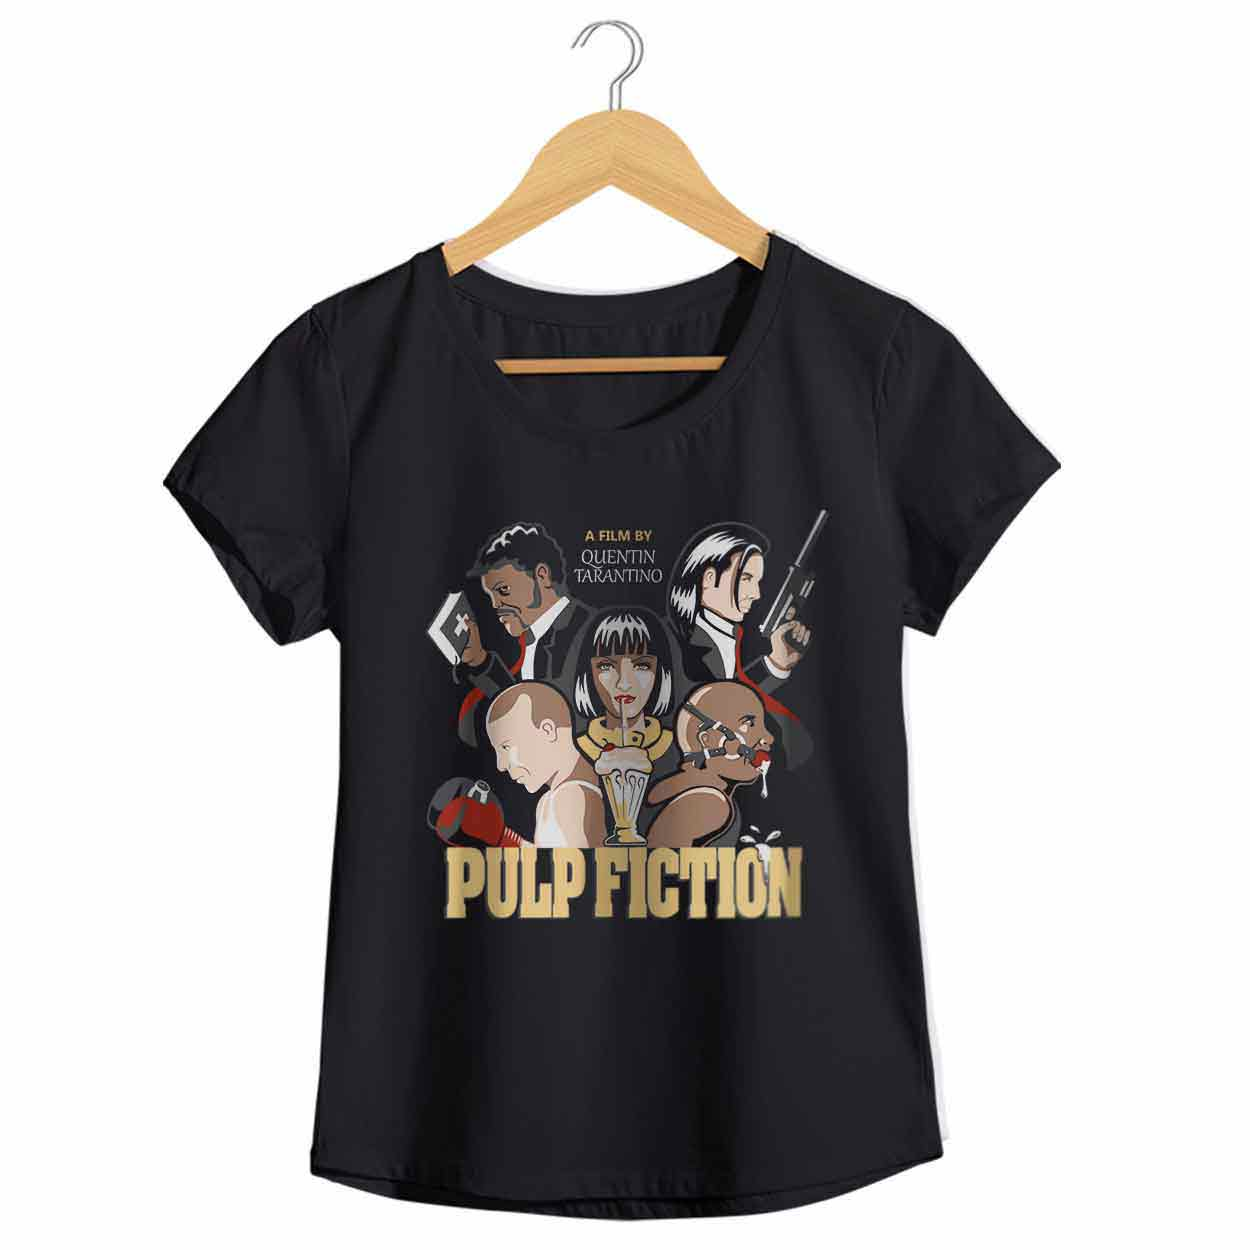 Camiseta Pulp Fiction - Quentin Tarantino - Feminino